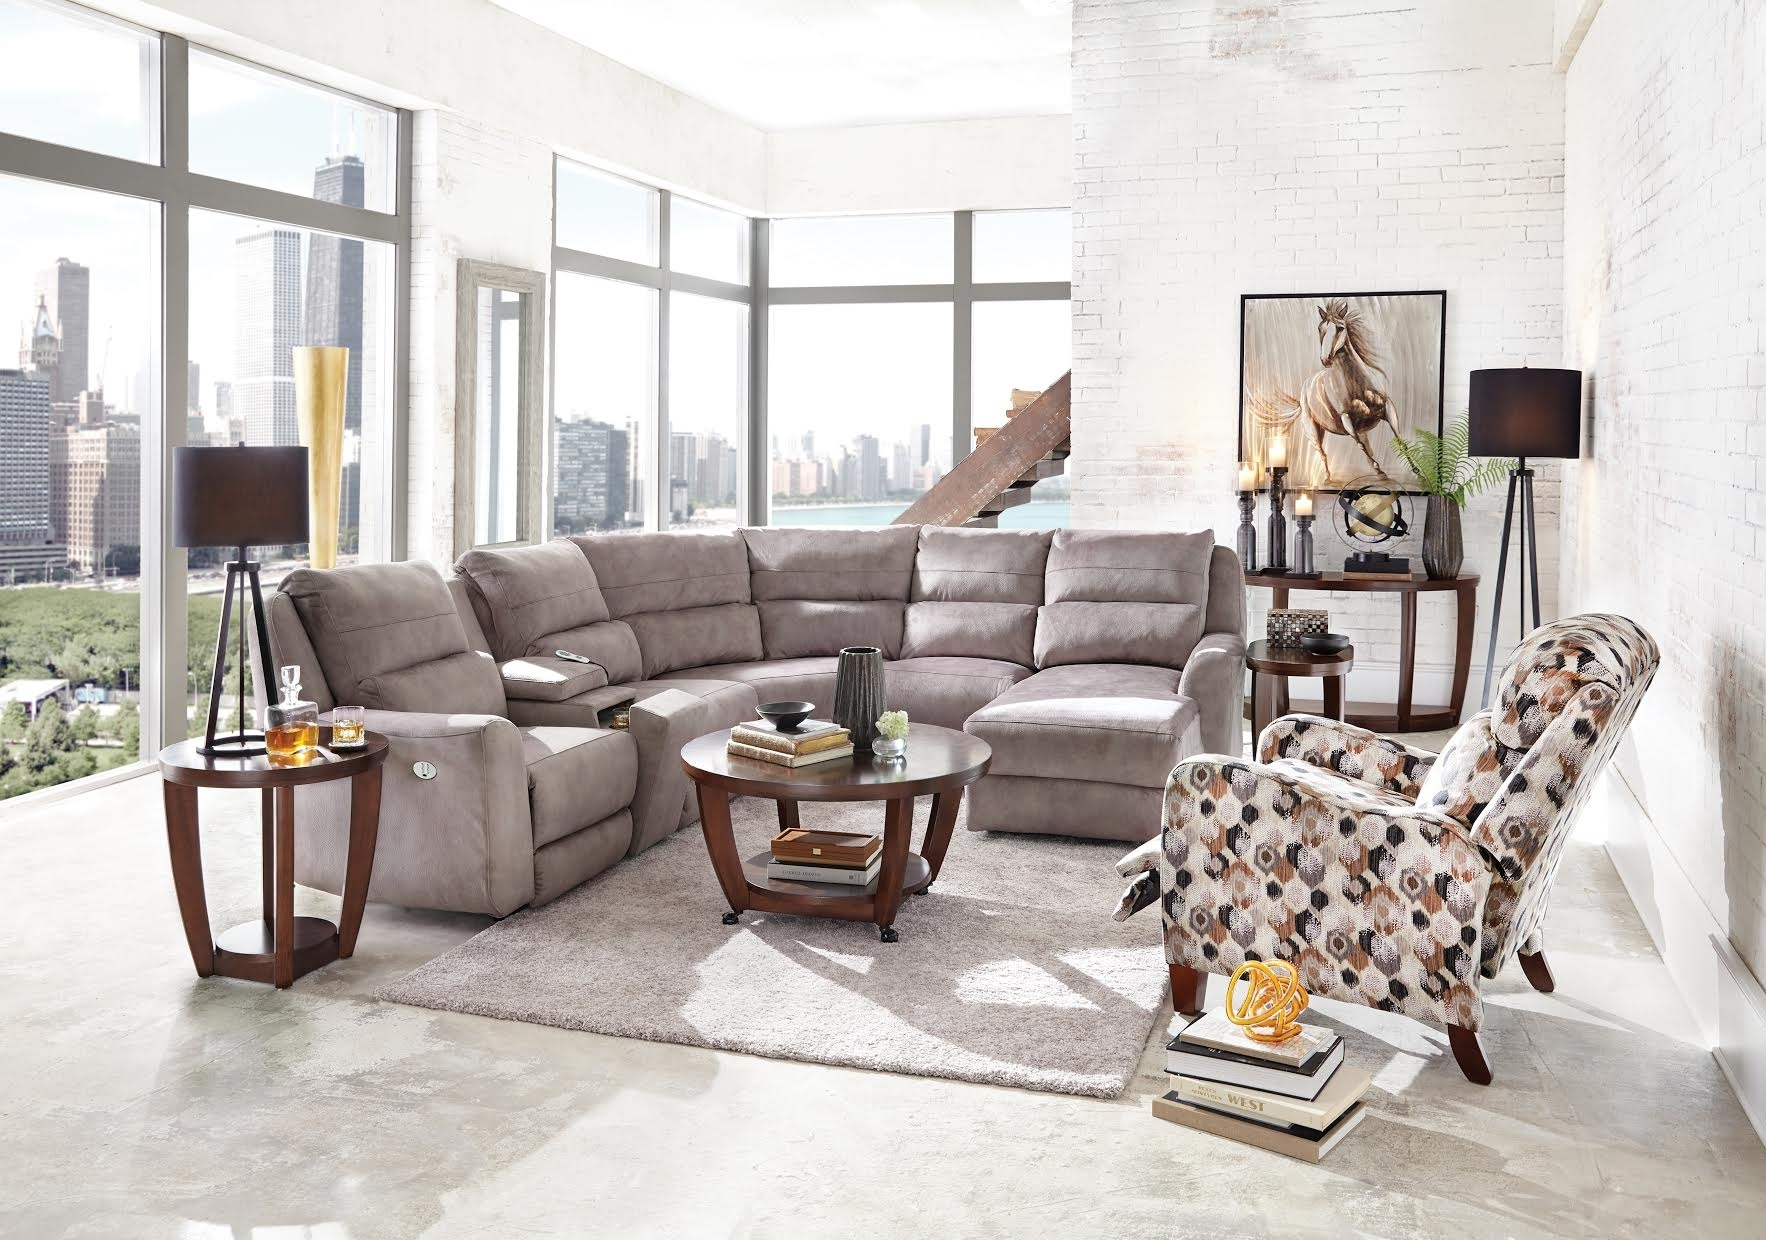 Motion Furniture Products – Recliner Chairs, Sofas And More With Travis Cognac Leather 6 Piece Power Reclining Sectionals With Power Headrest & Usb (Image 20 of 25)